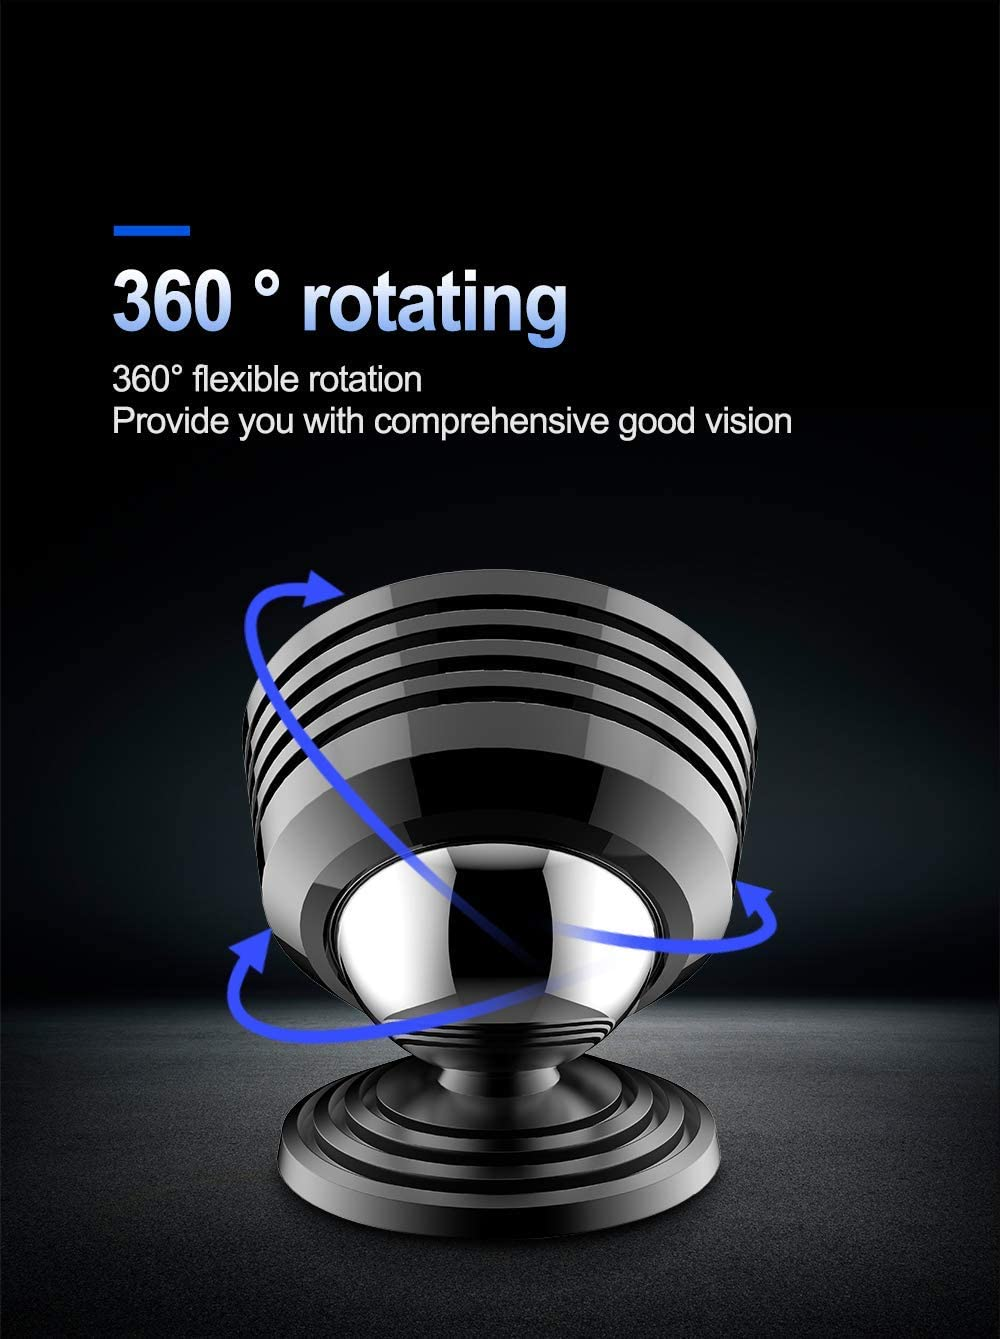 360/° Adjustable Dashboard Phone Car Mount /with Super Strong Compatible with iPhone XR//Xs Max//XS//X//8//8 Plus YOUFO Universal Magnetic Phone Holder Samsung Galaxy S9//S9+te9//S7edge and More